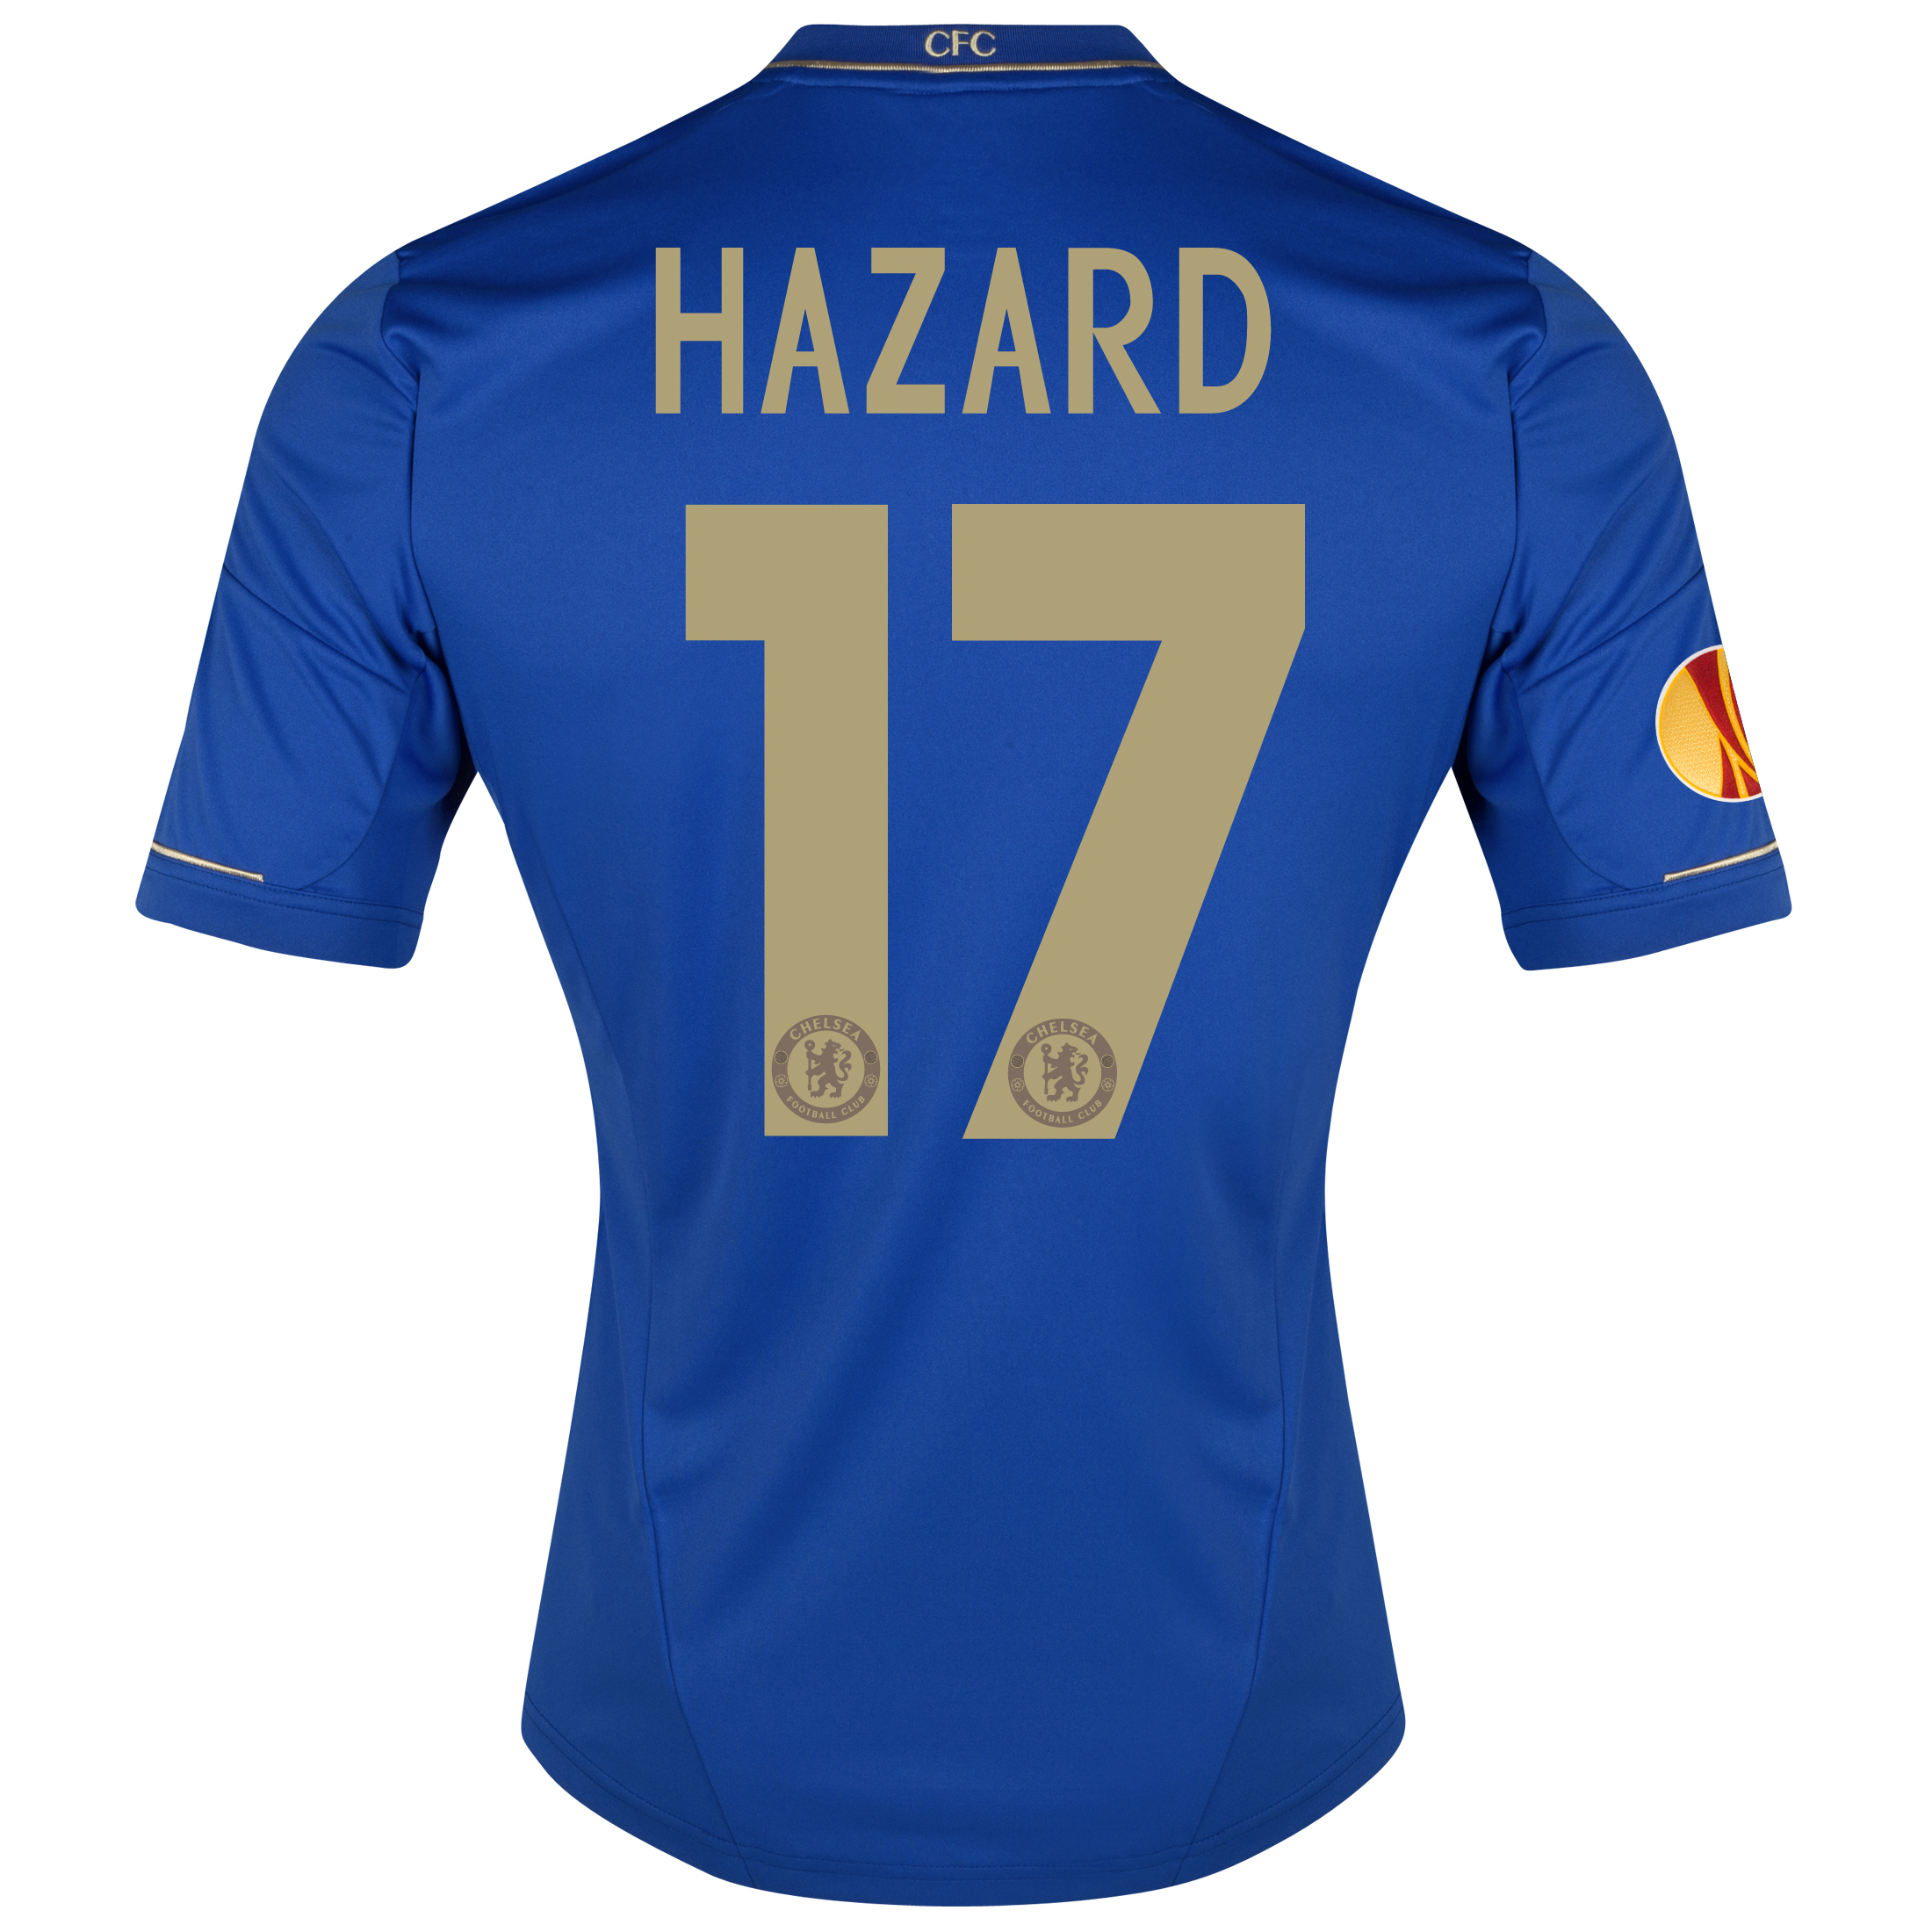 Chelsea UEFA Europa League Home Shirt 2012/13 - Kids with Hazard 17 printing Including Europa Badge